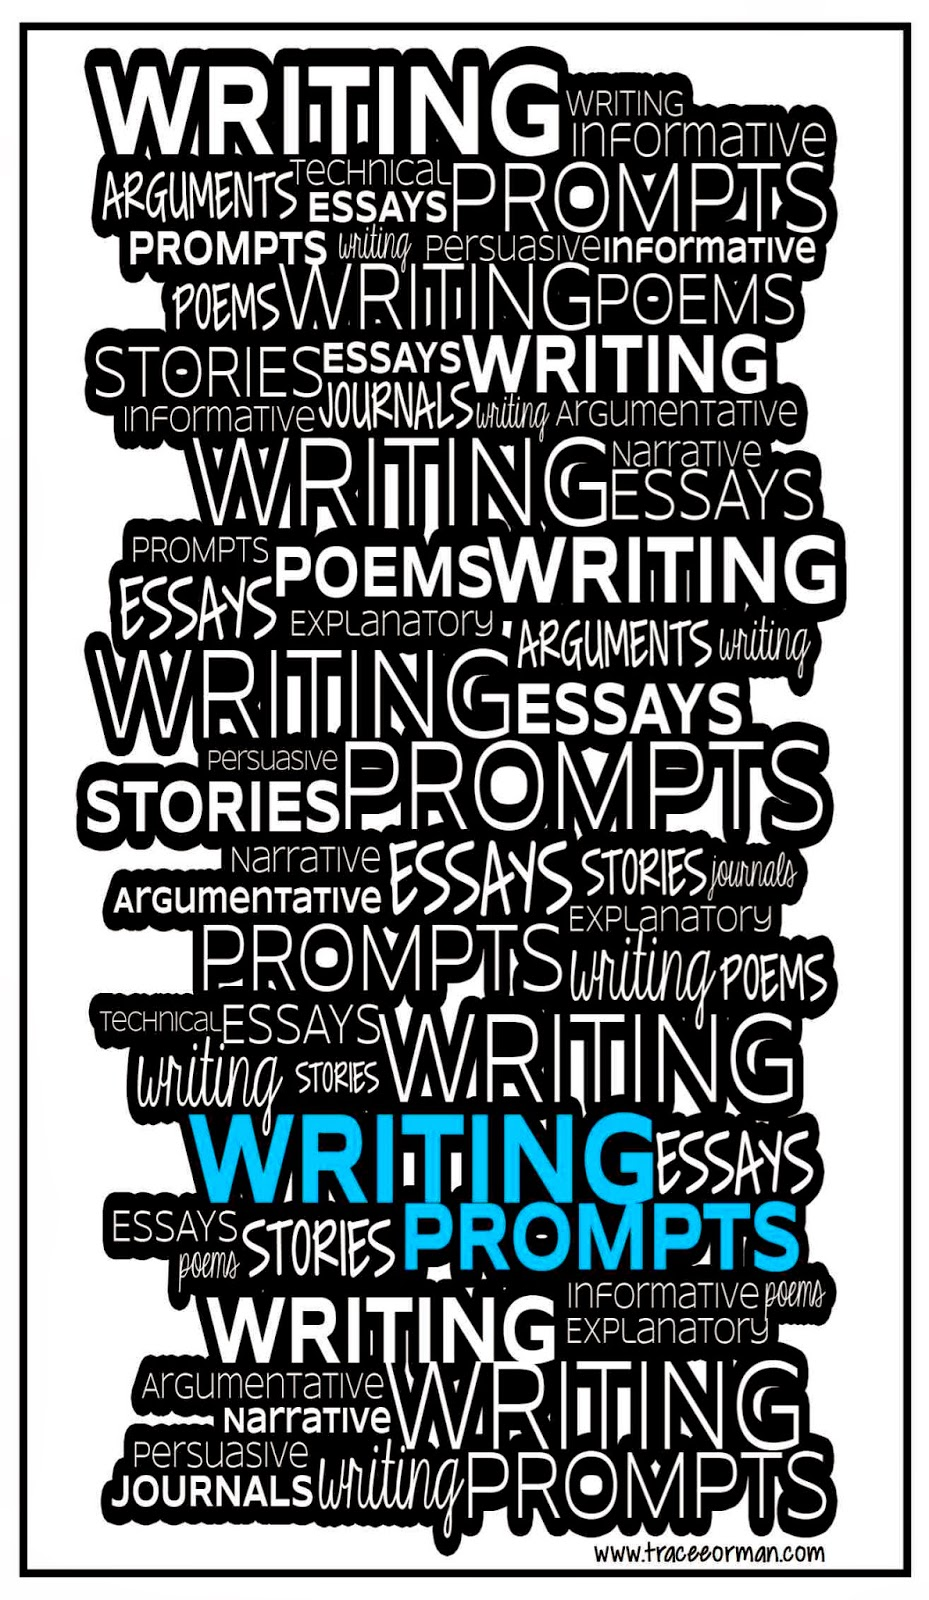 mrs orman s classroom 01 15 links to tons of writing prompts for teens